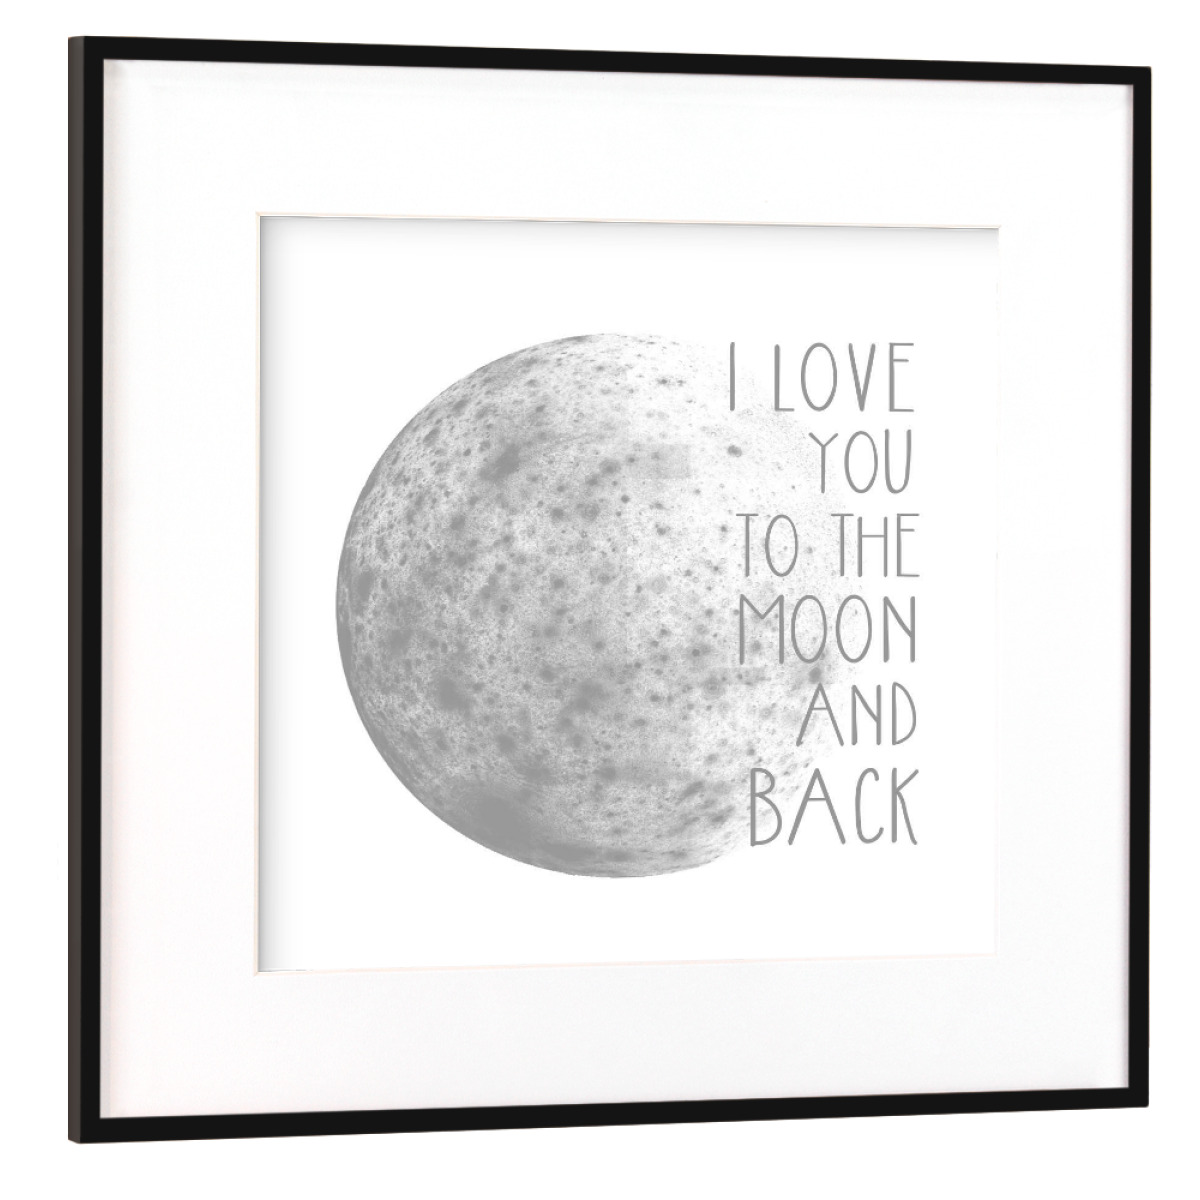 Purchase the I Love You To The Moon And Back as a Frame at artboxONE